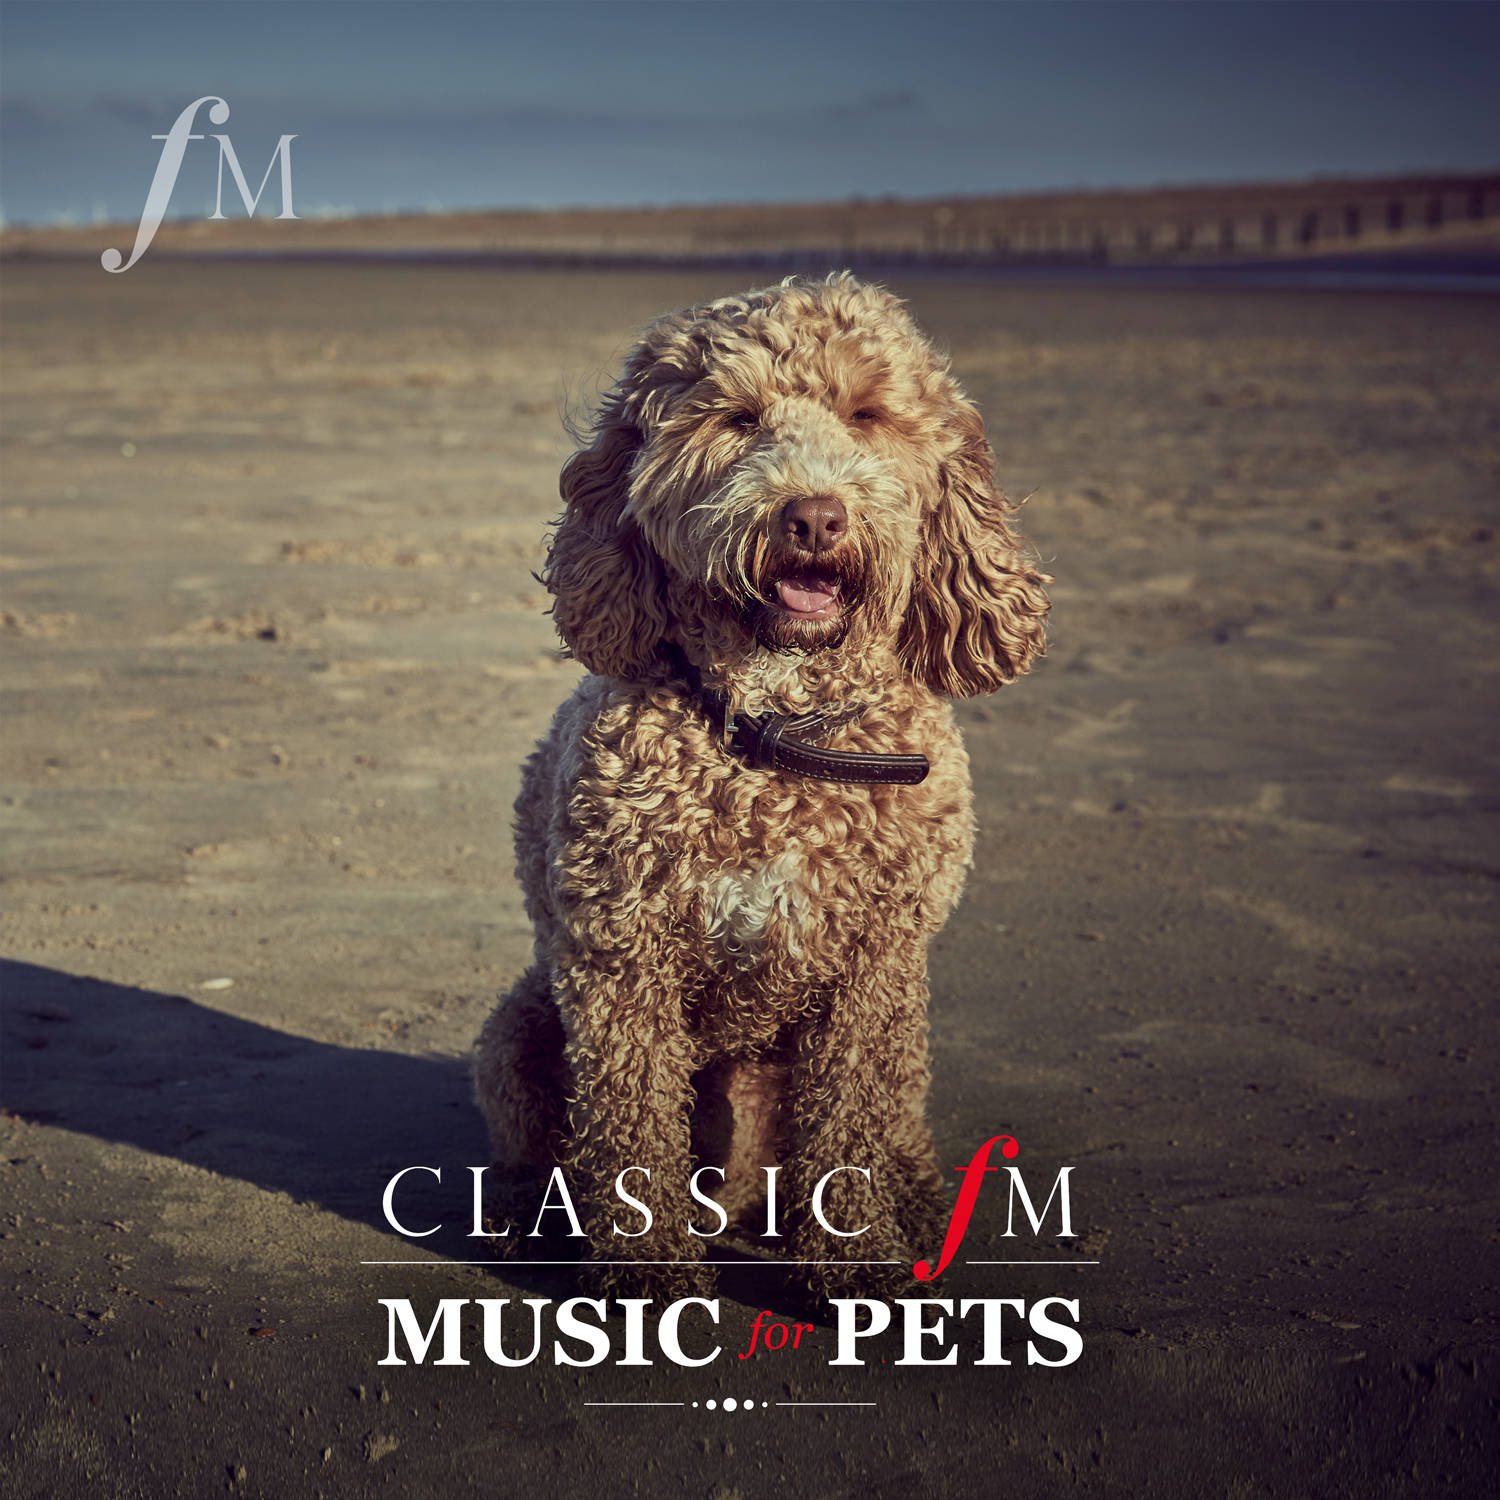 Classic FM Music For Pets image